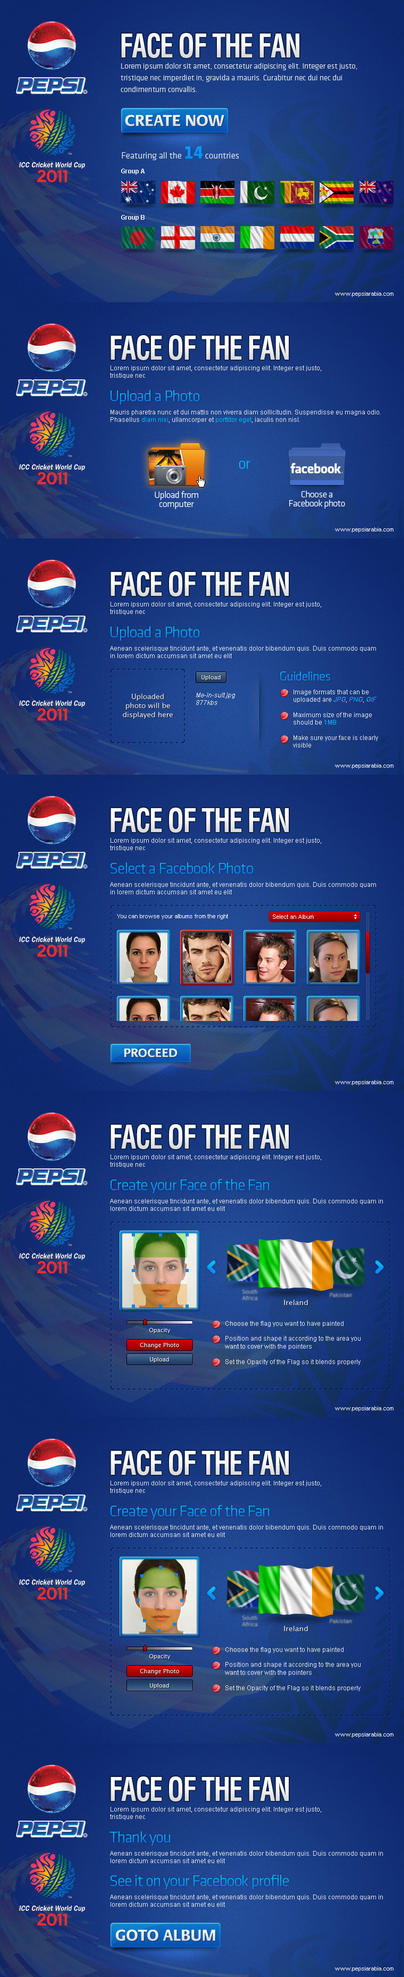 Pepsi Face of the Fan FB App by da8esix